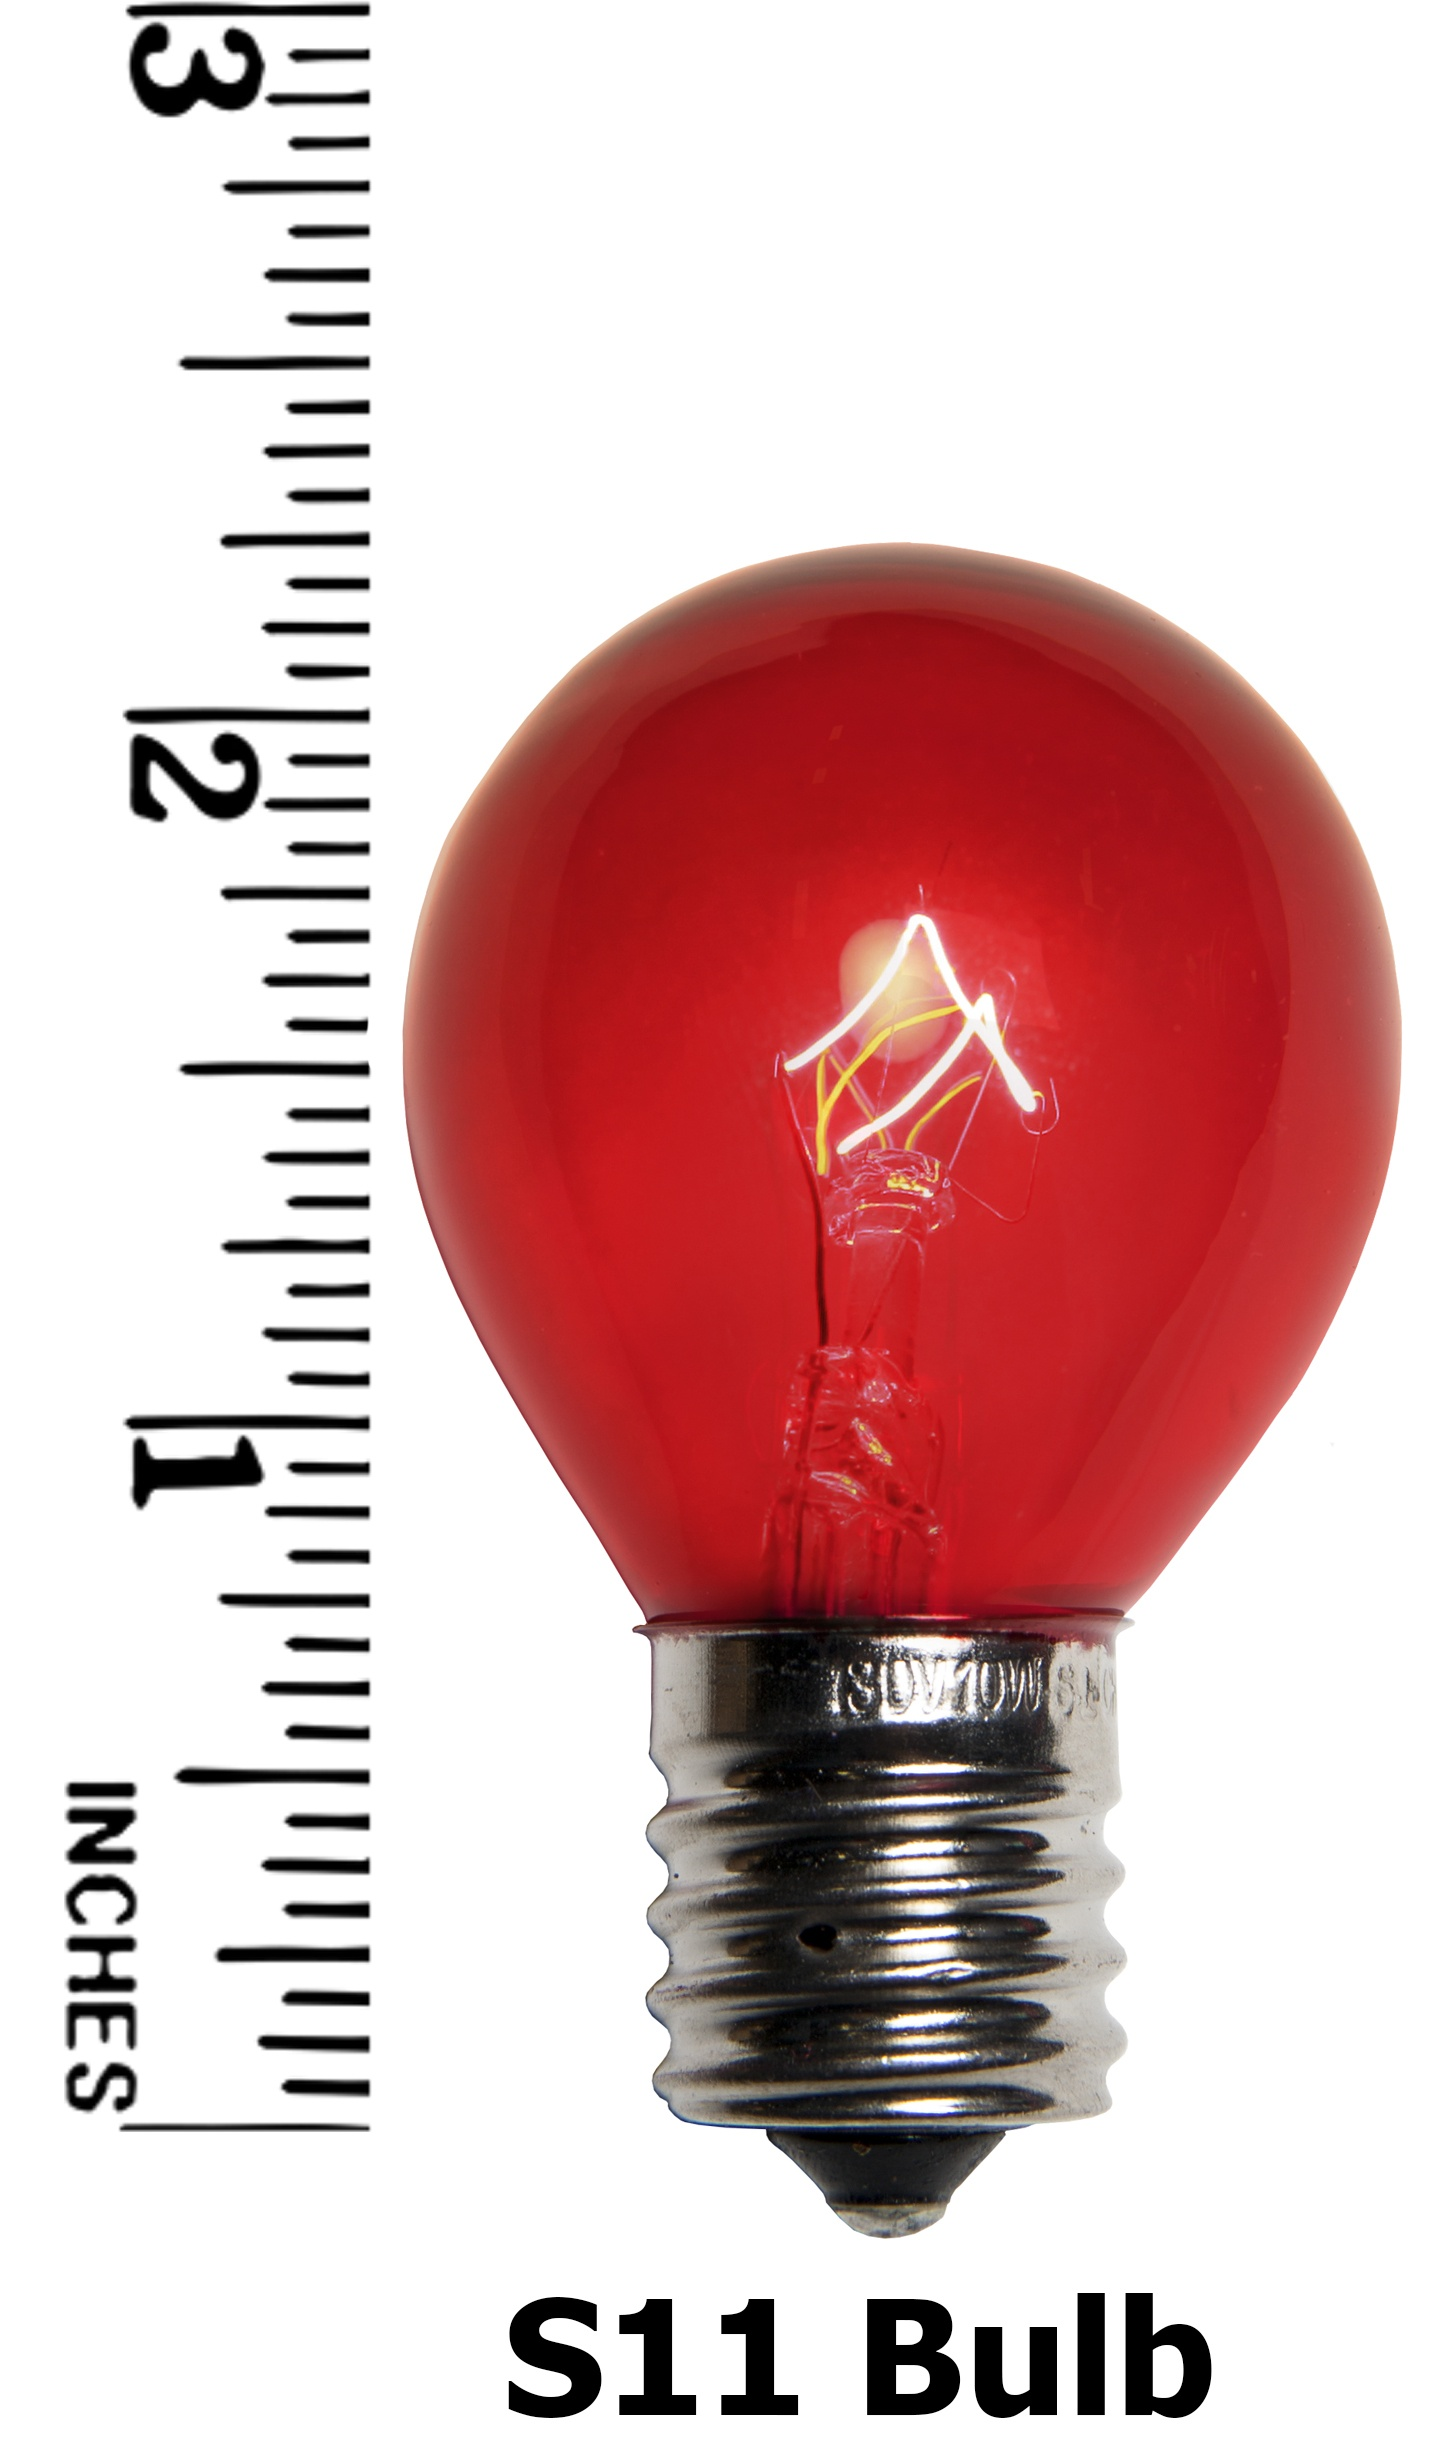 S11 Red Bulb Measurement